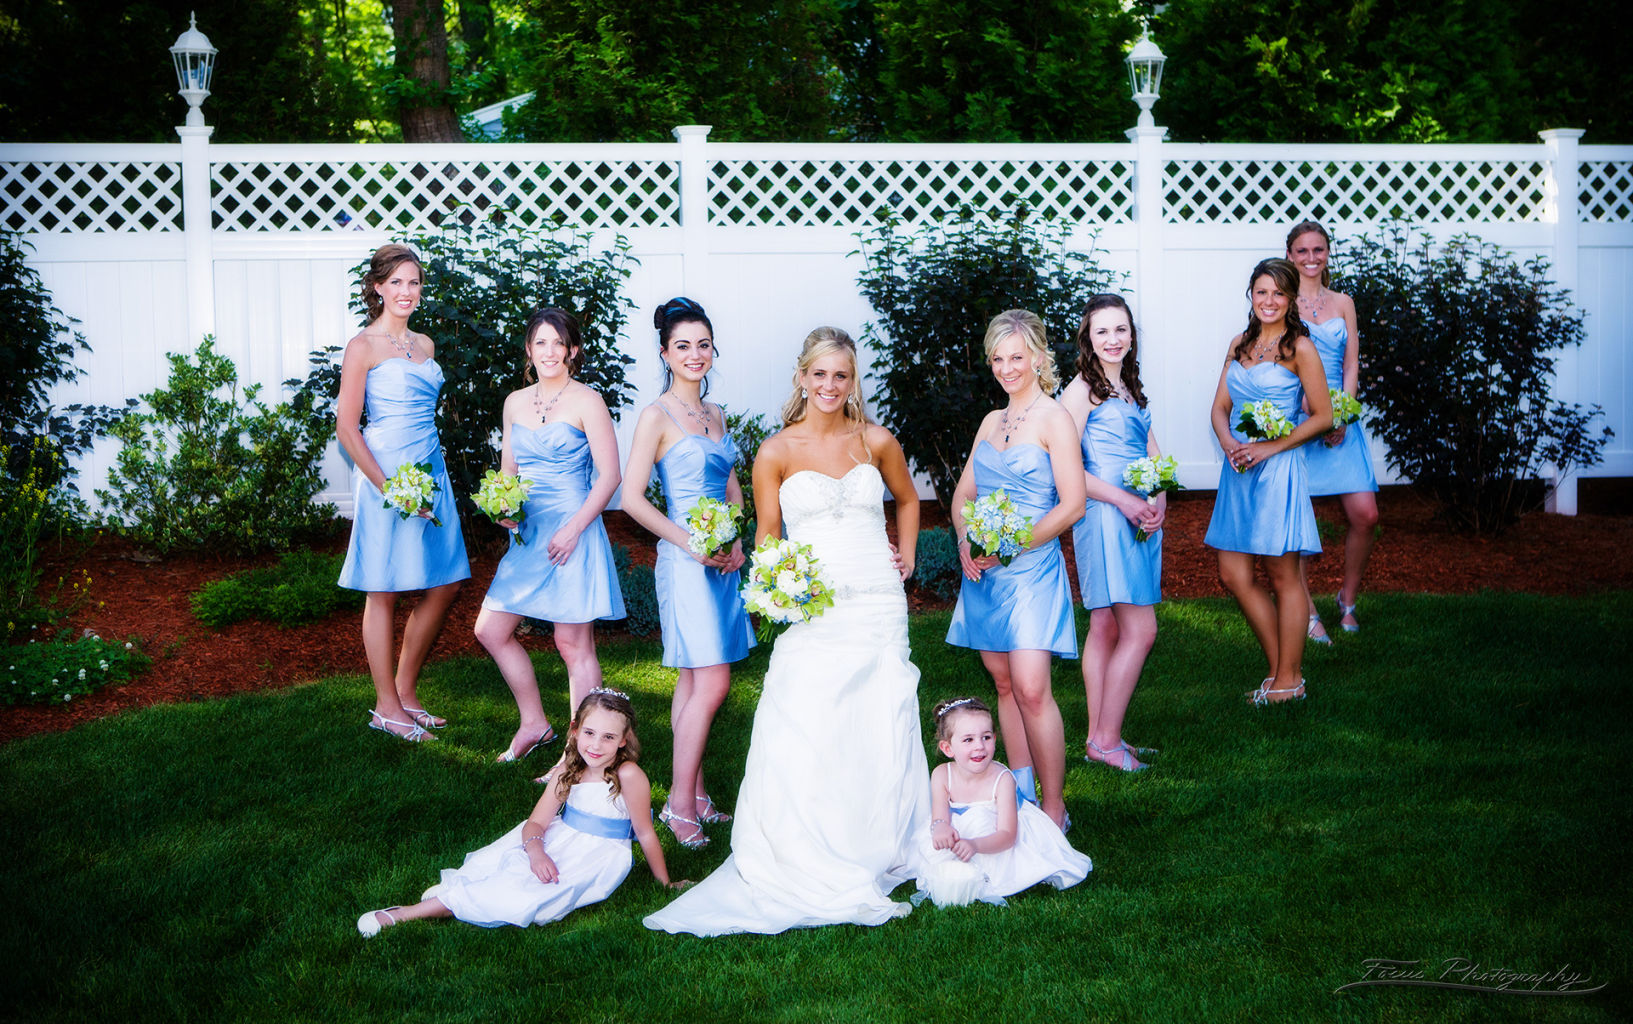 bridal party portrait by maine wedding photographers Focus Photography